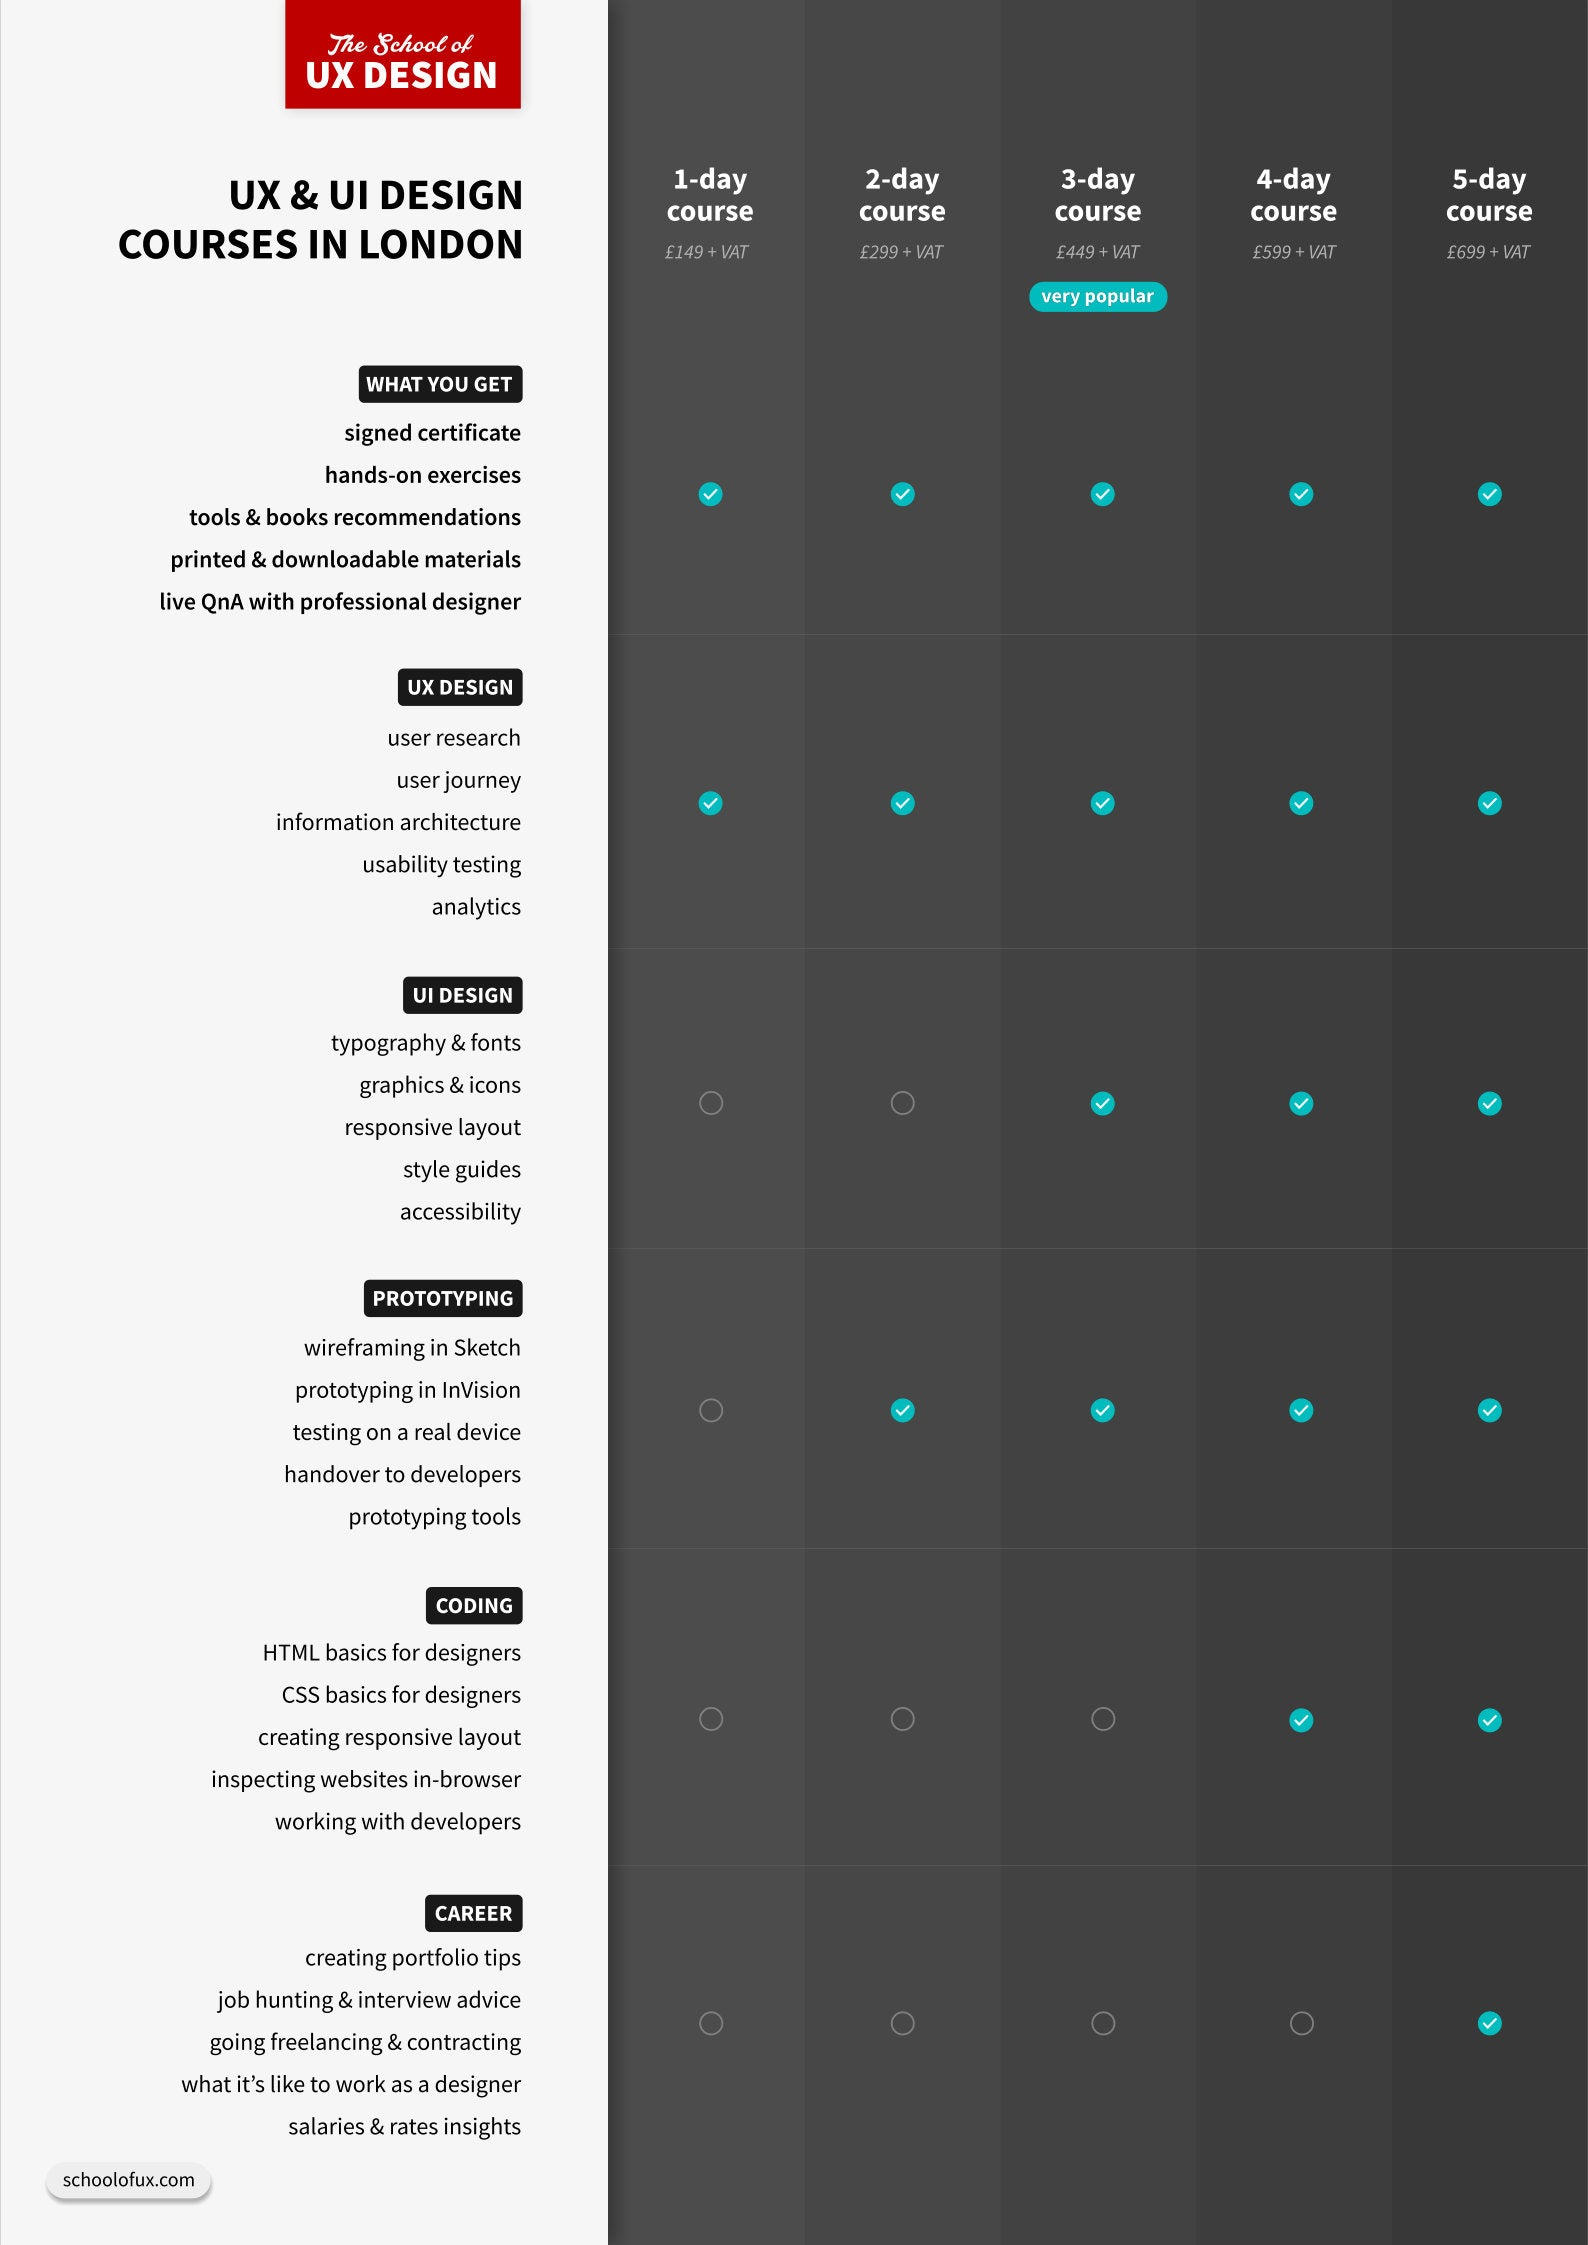 The School of UX courses comparison